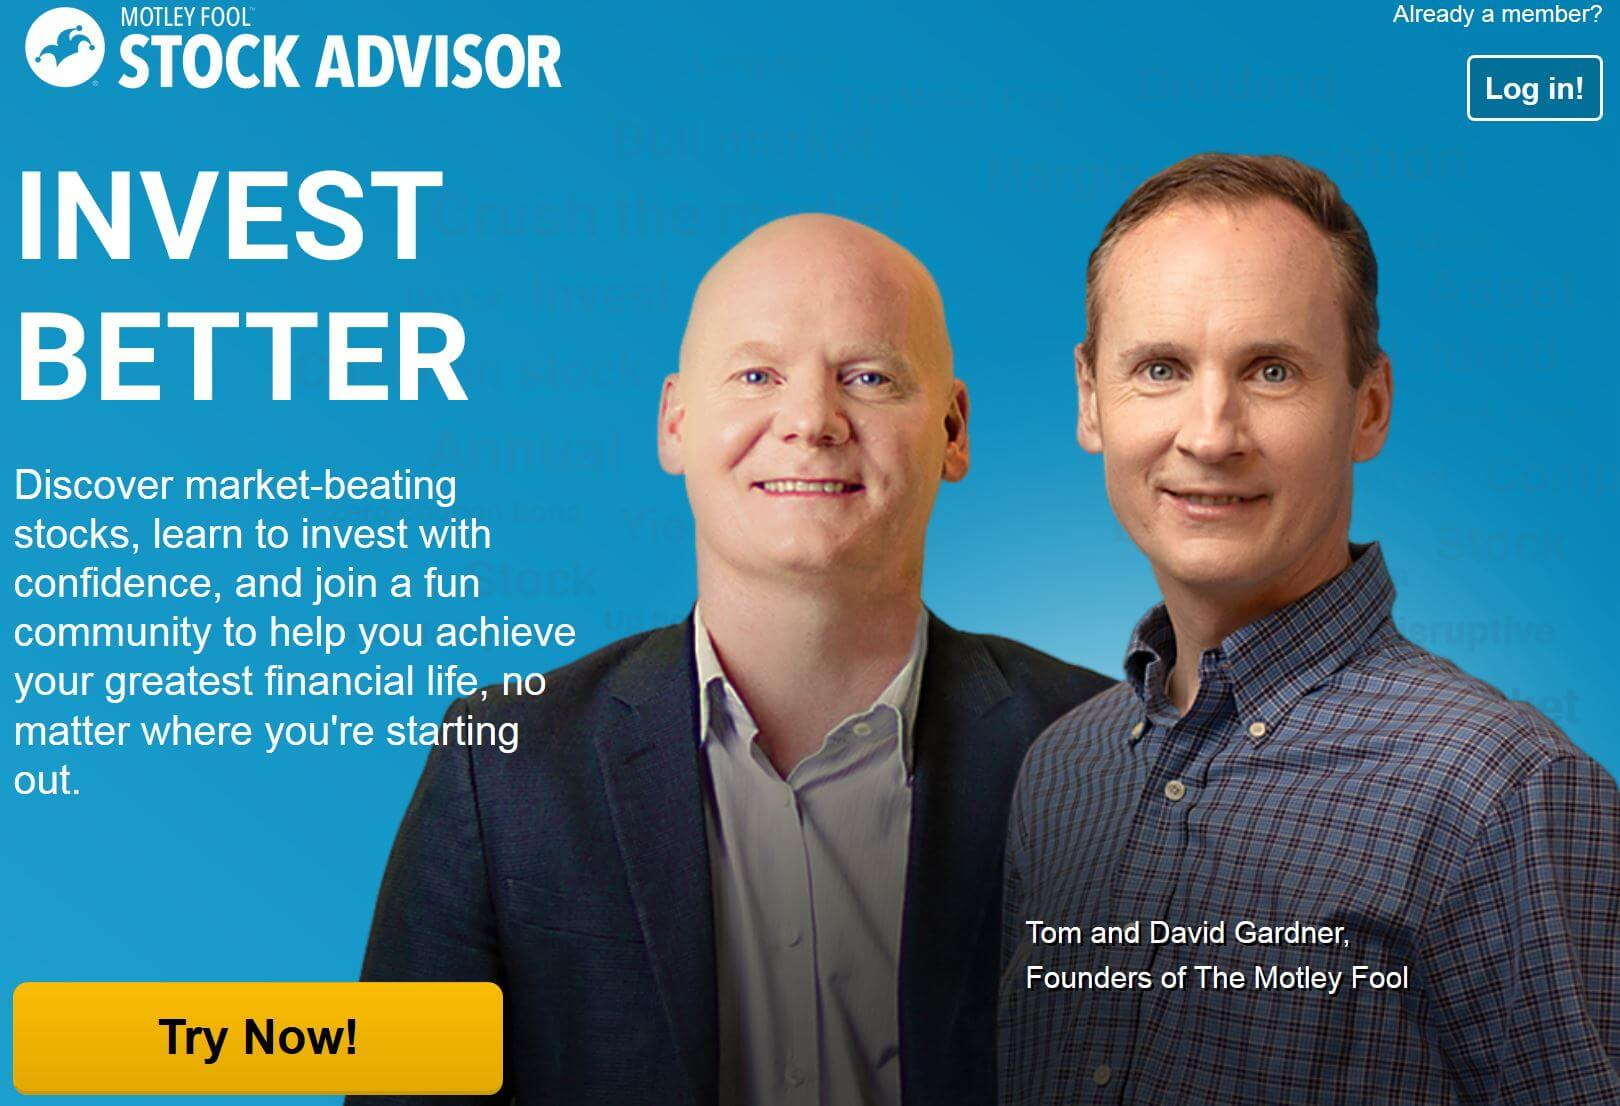 The Motley Fool Newsletter